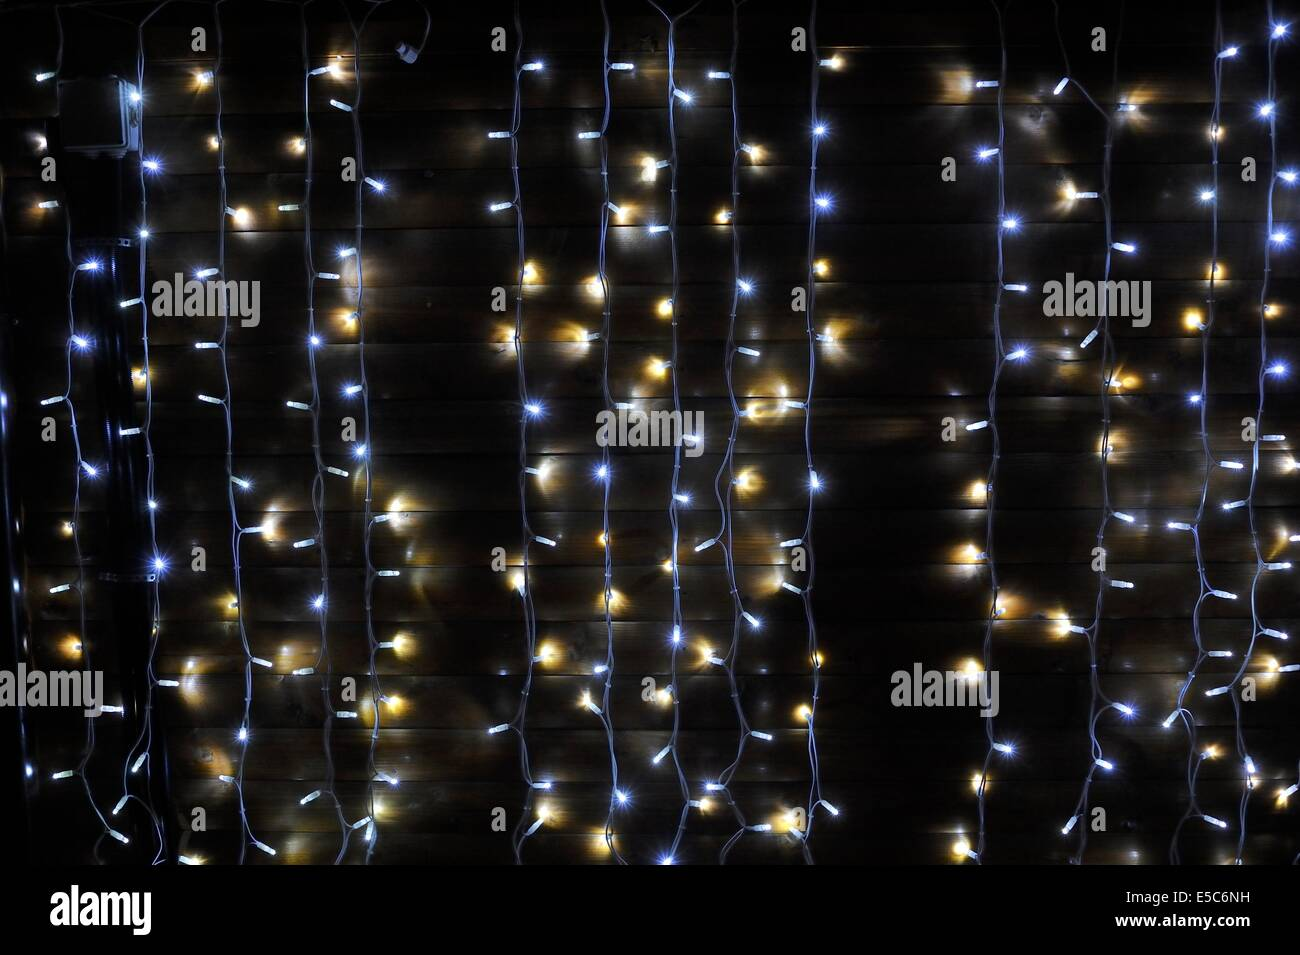 Wall Christmas Lights : Images of Wall Christmas Lights - Best Christmas Tree Decoration Ideas